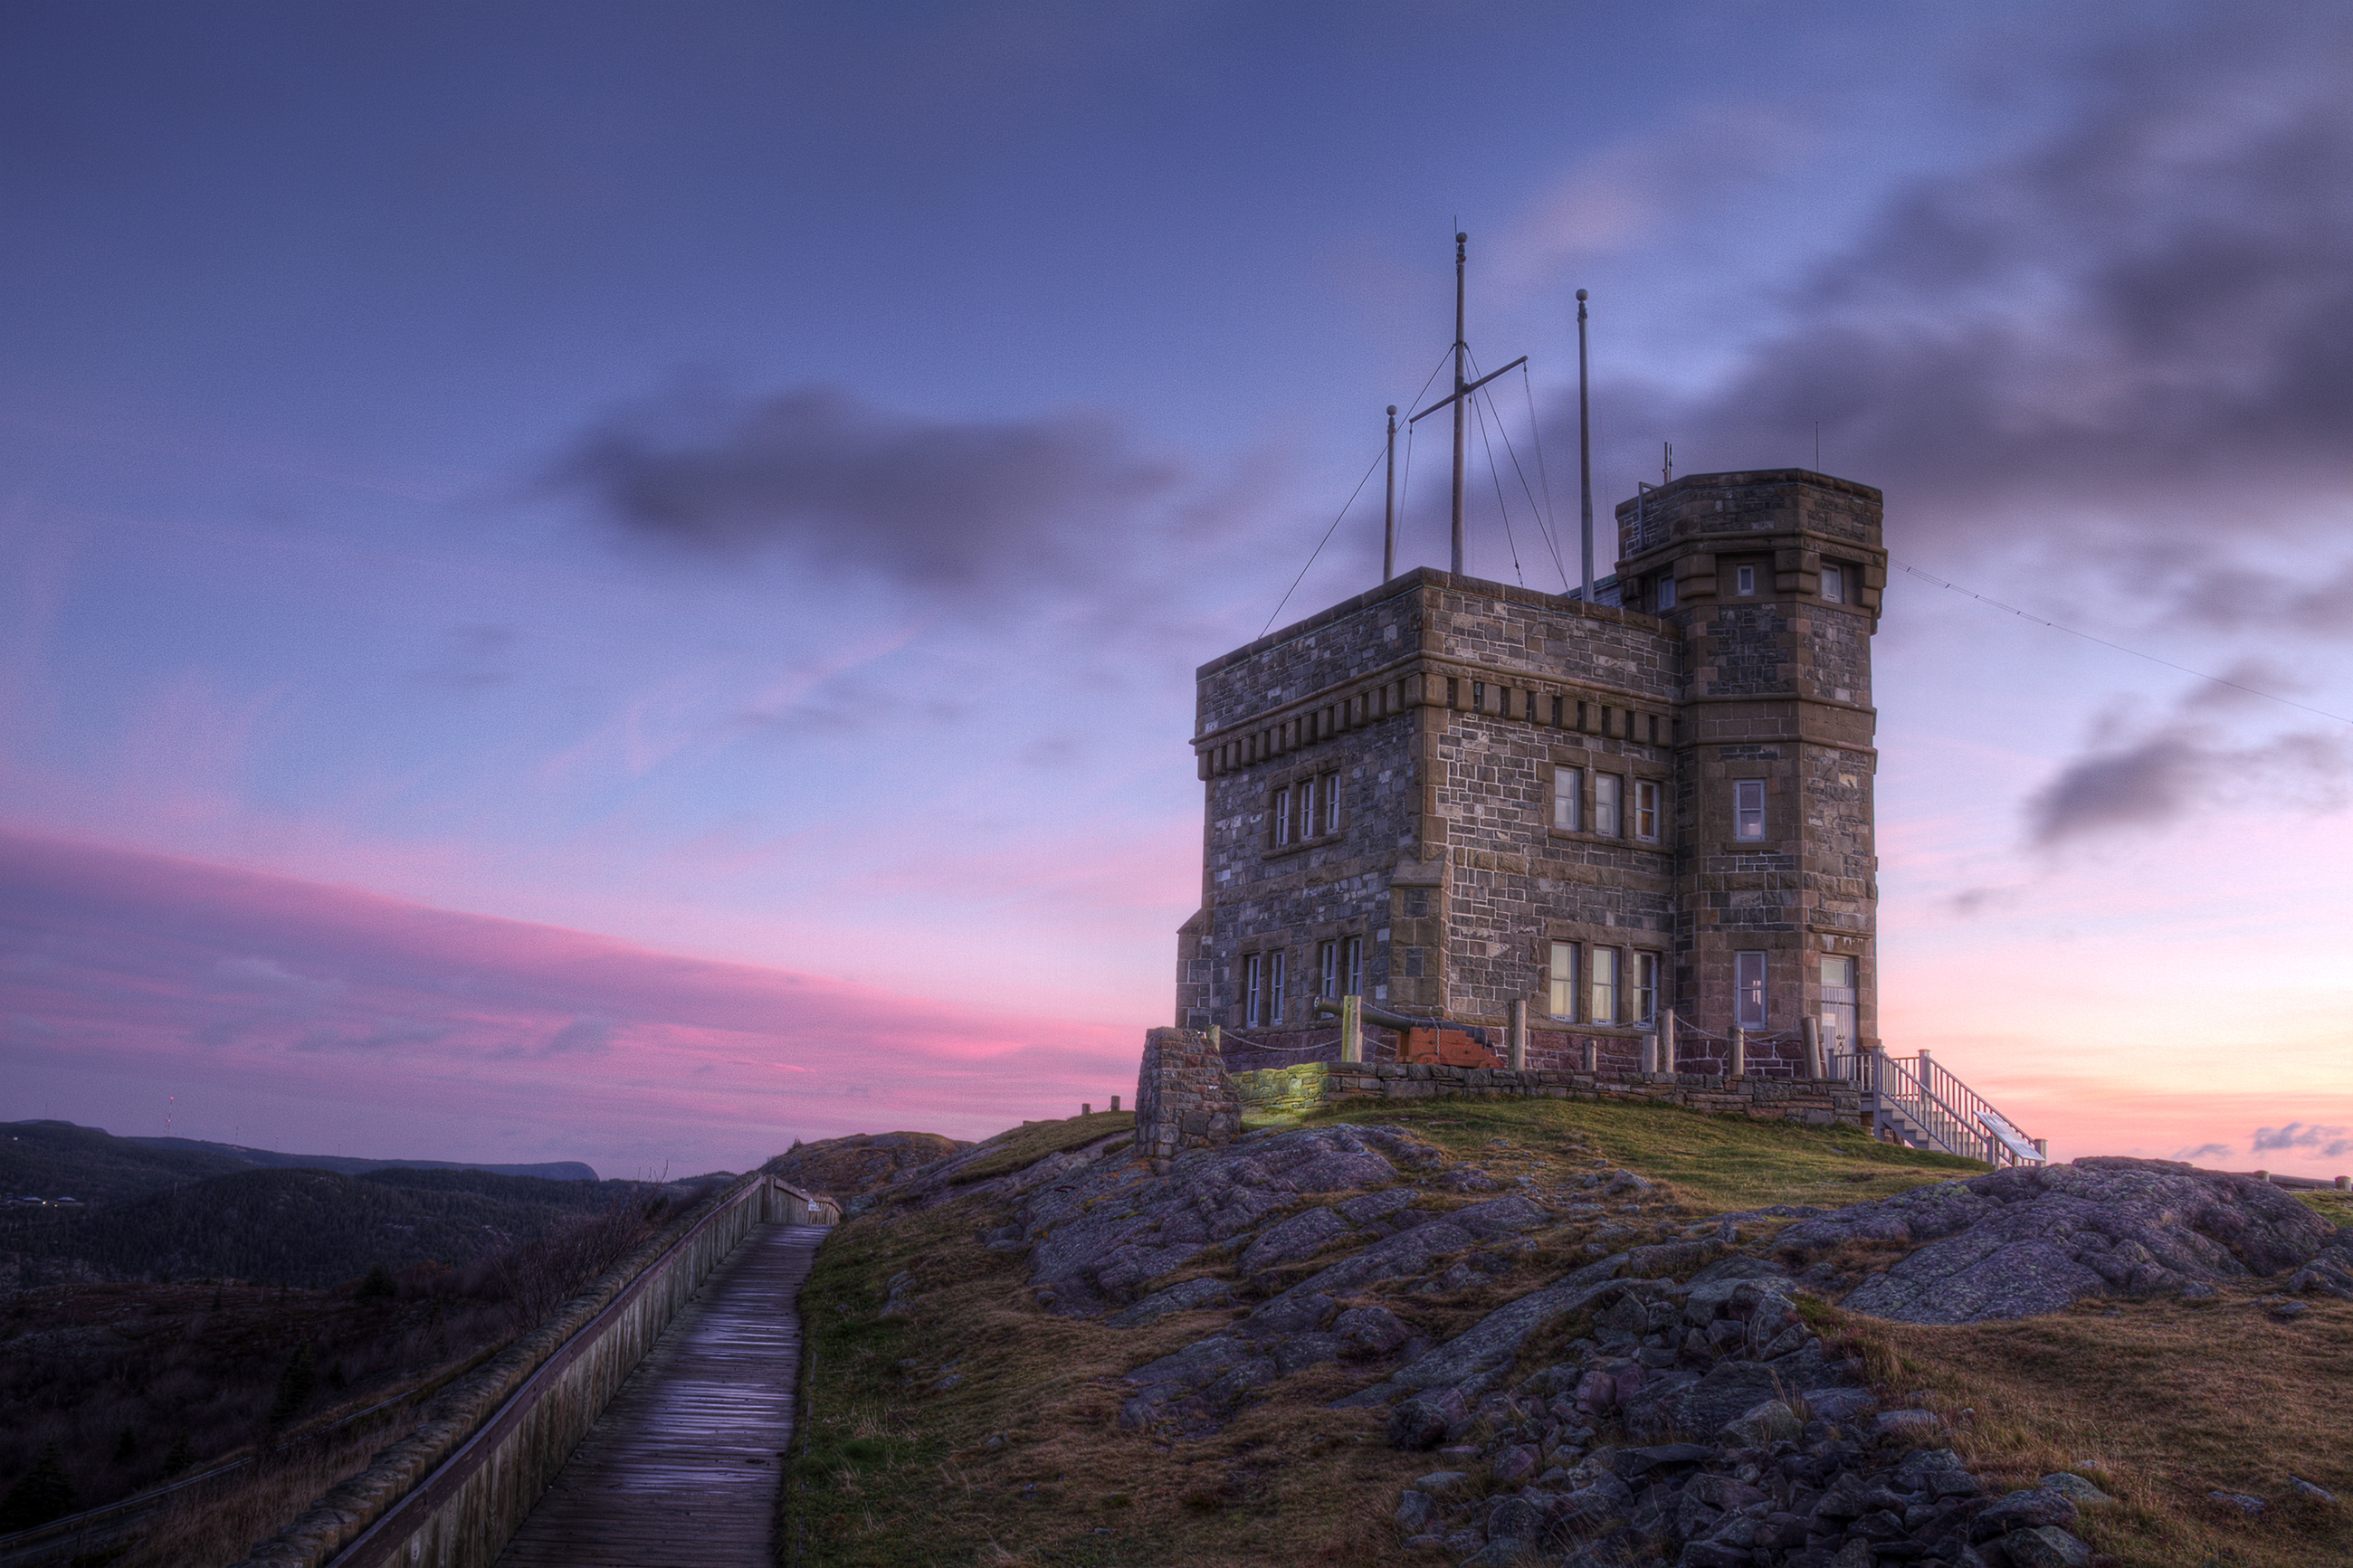 Cabot Tower, Atlantic, Military, Vacation, Travel, HQ Photo